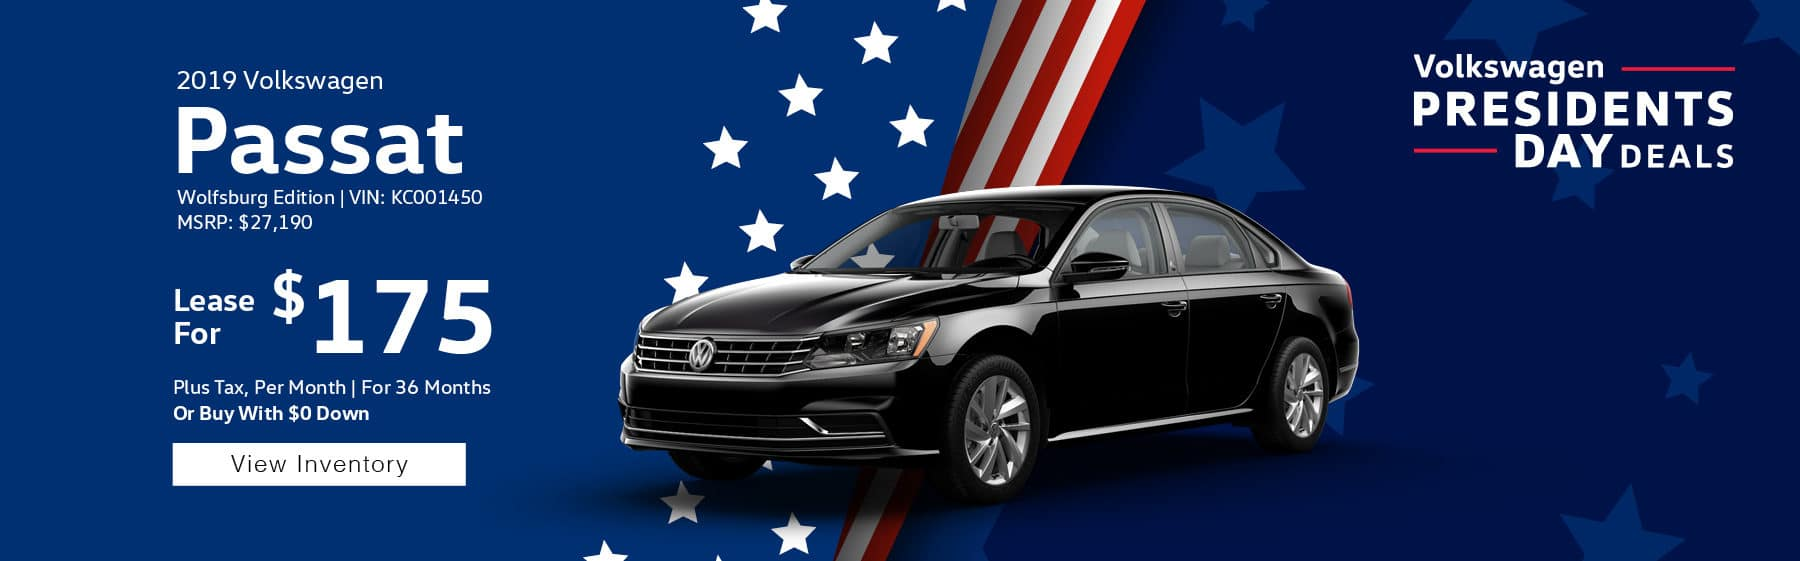 Lease the 2019 Volkswagen Passat Wolfsburg Edition for $175 plus tax for 36 months. $1,895 Down payment required.